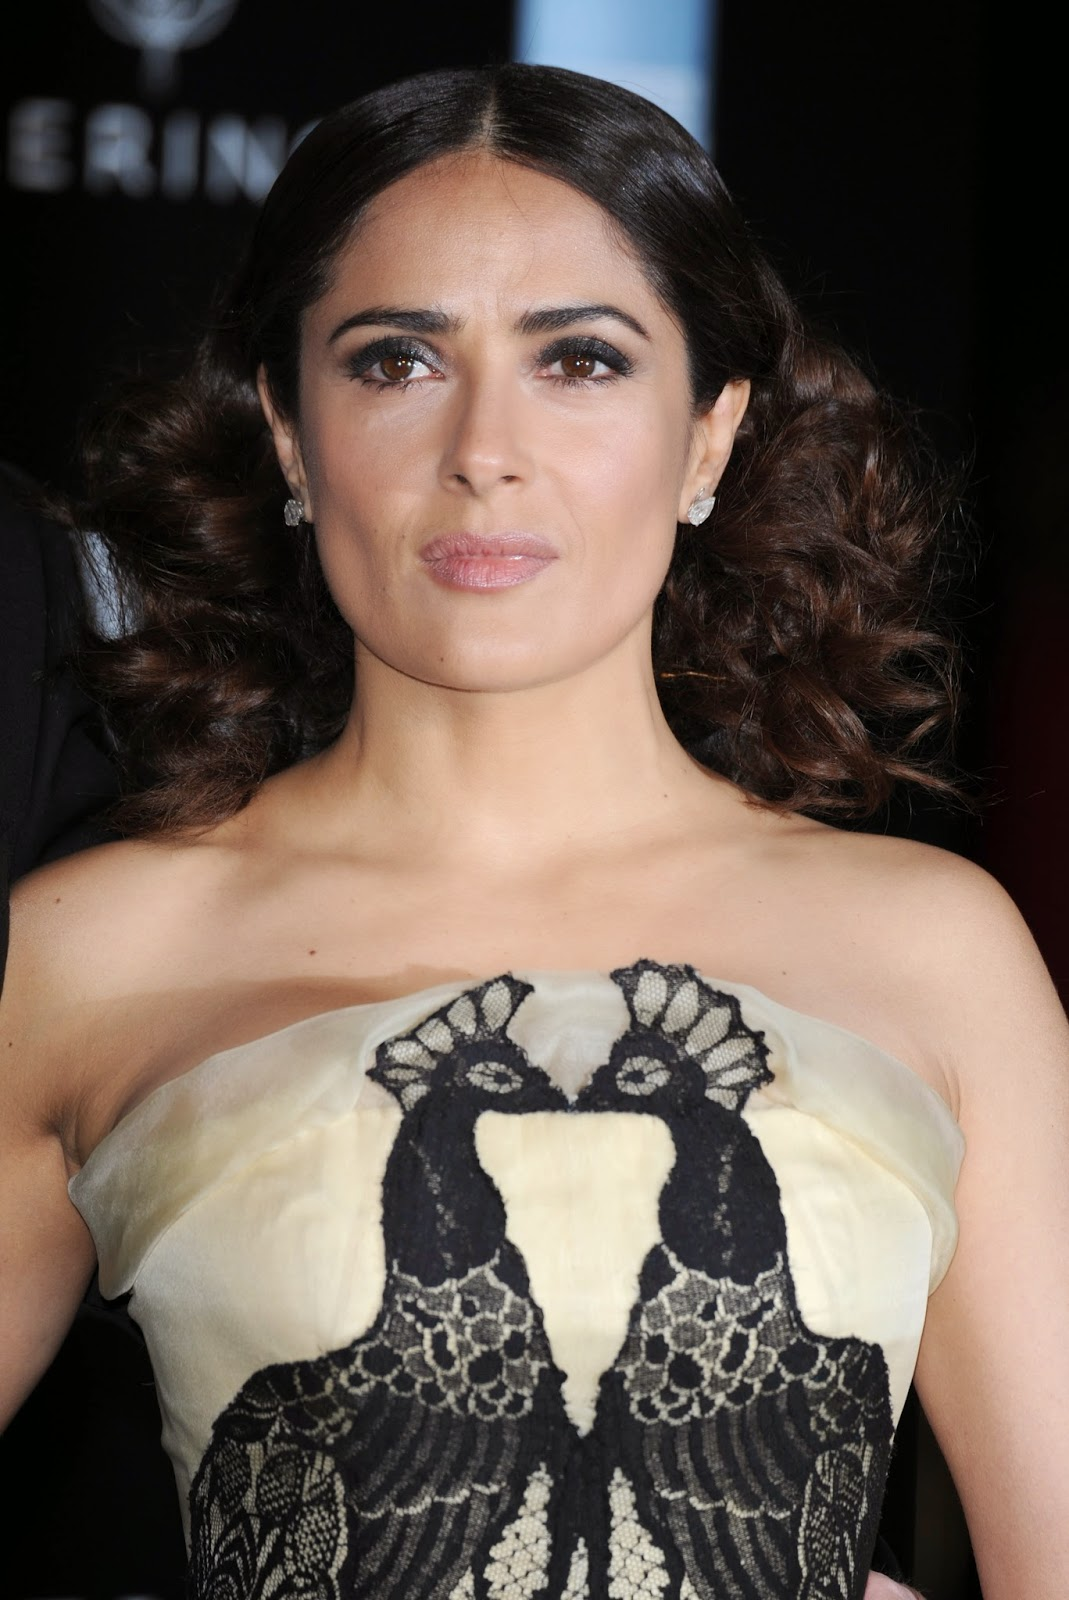 Actress @ Salma Hayek - Candids at Alexander McQueen: Savage Beauty Exhibition in London